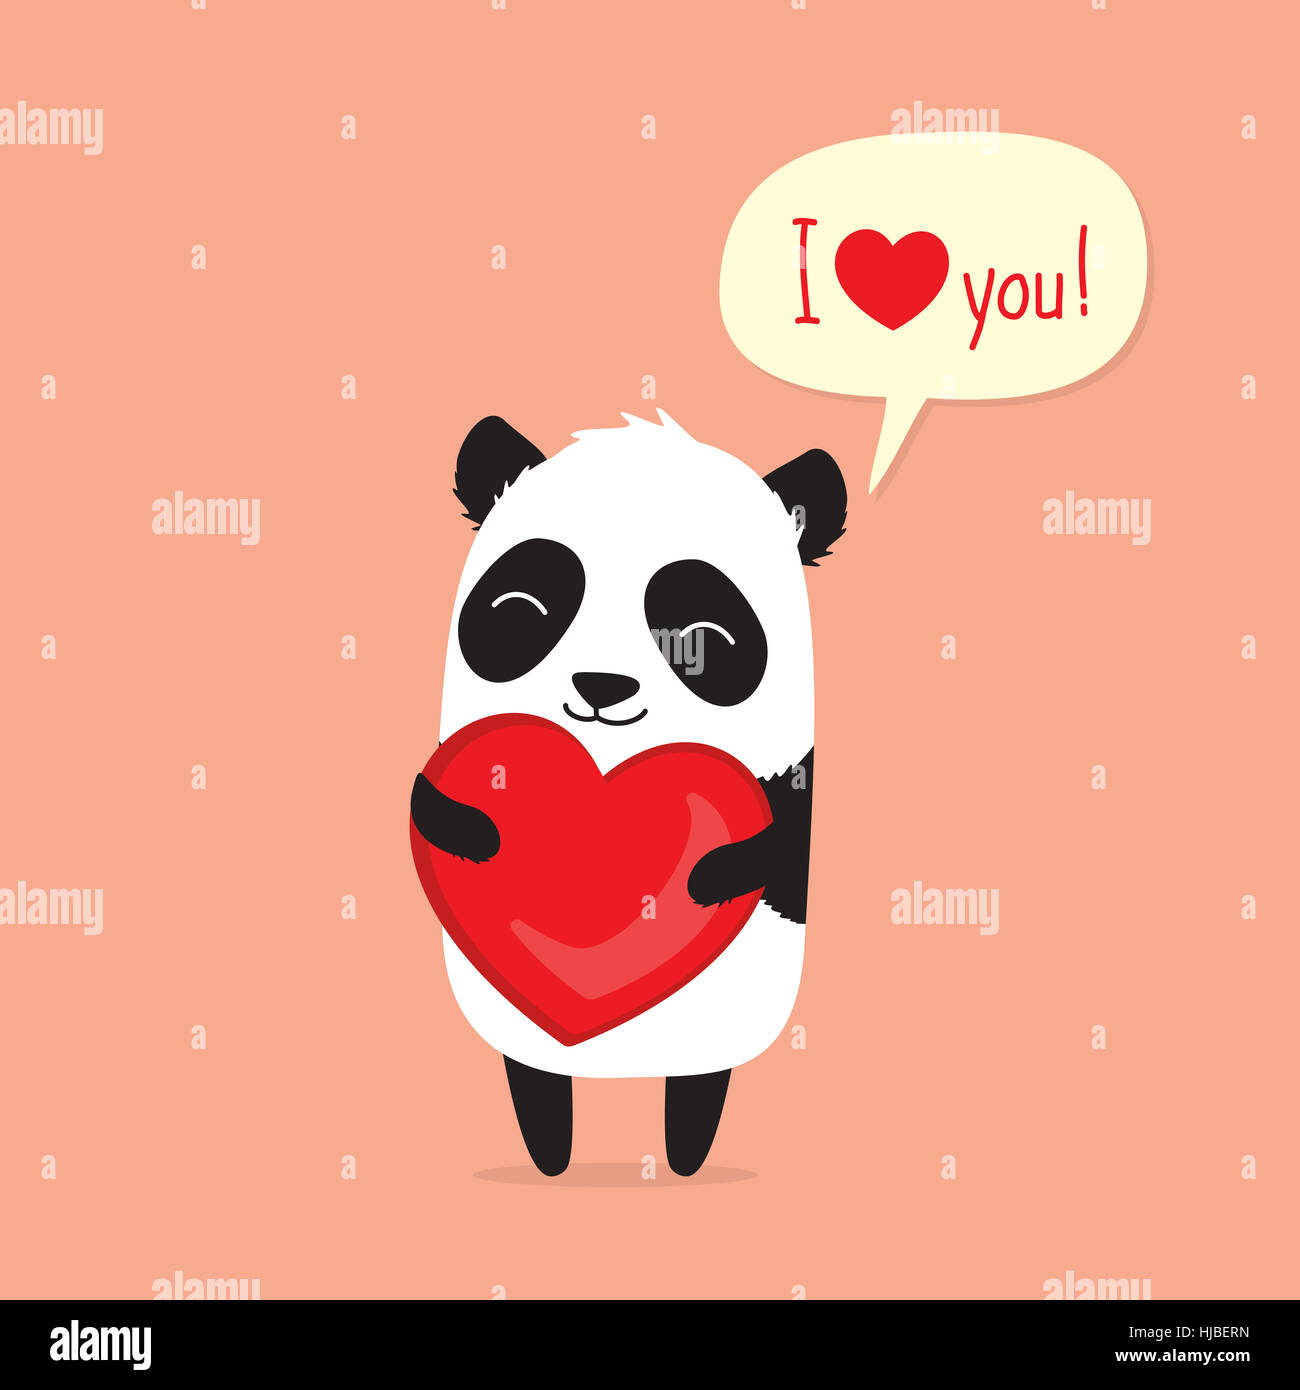 Cute cartoon panda holding heart and saying i love you in speech cute cartoon panda holding heart and saying i love you in speech bubble greeting card for valentines day thecheapjerseys Image collections